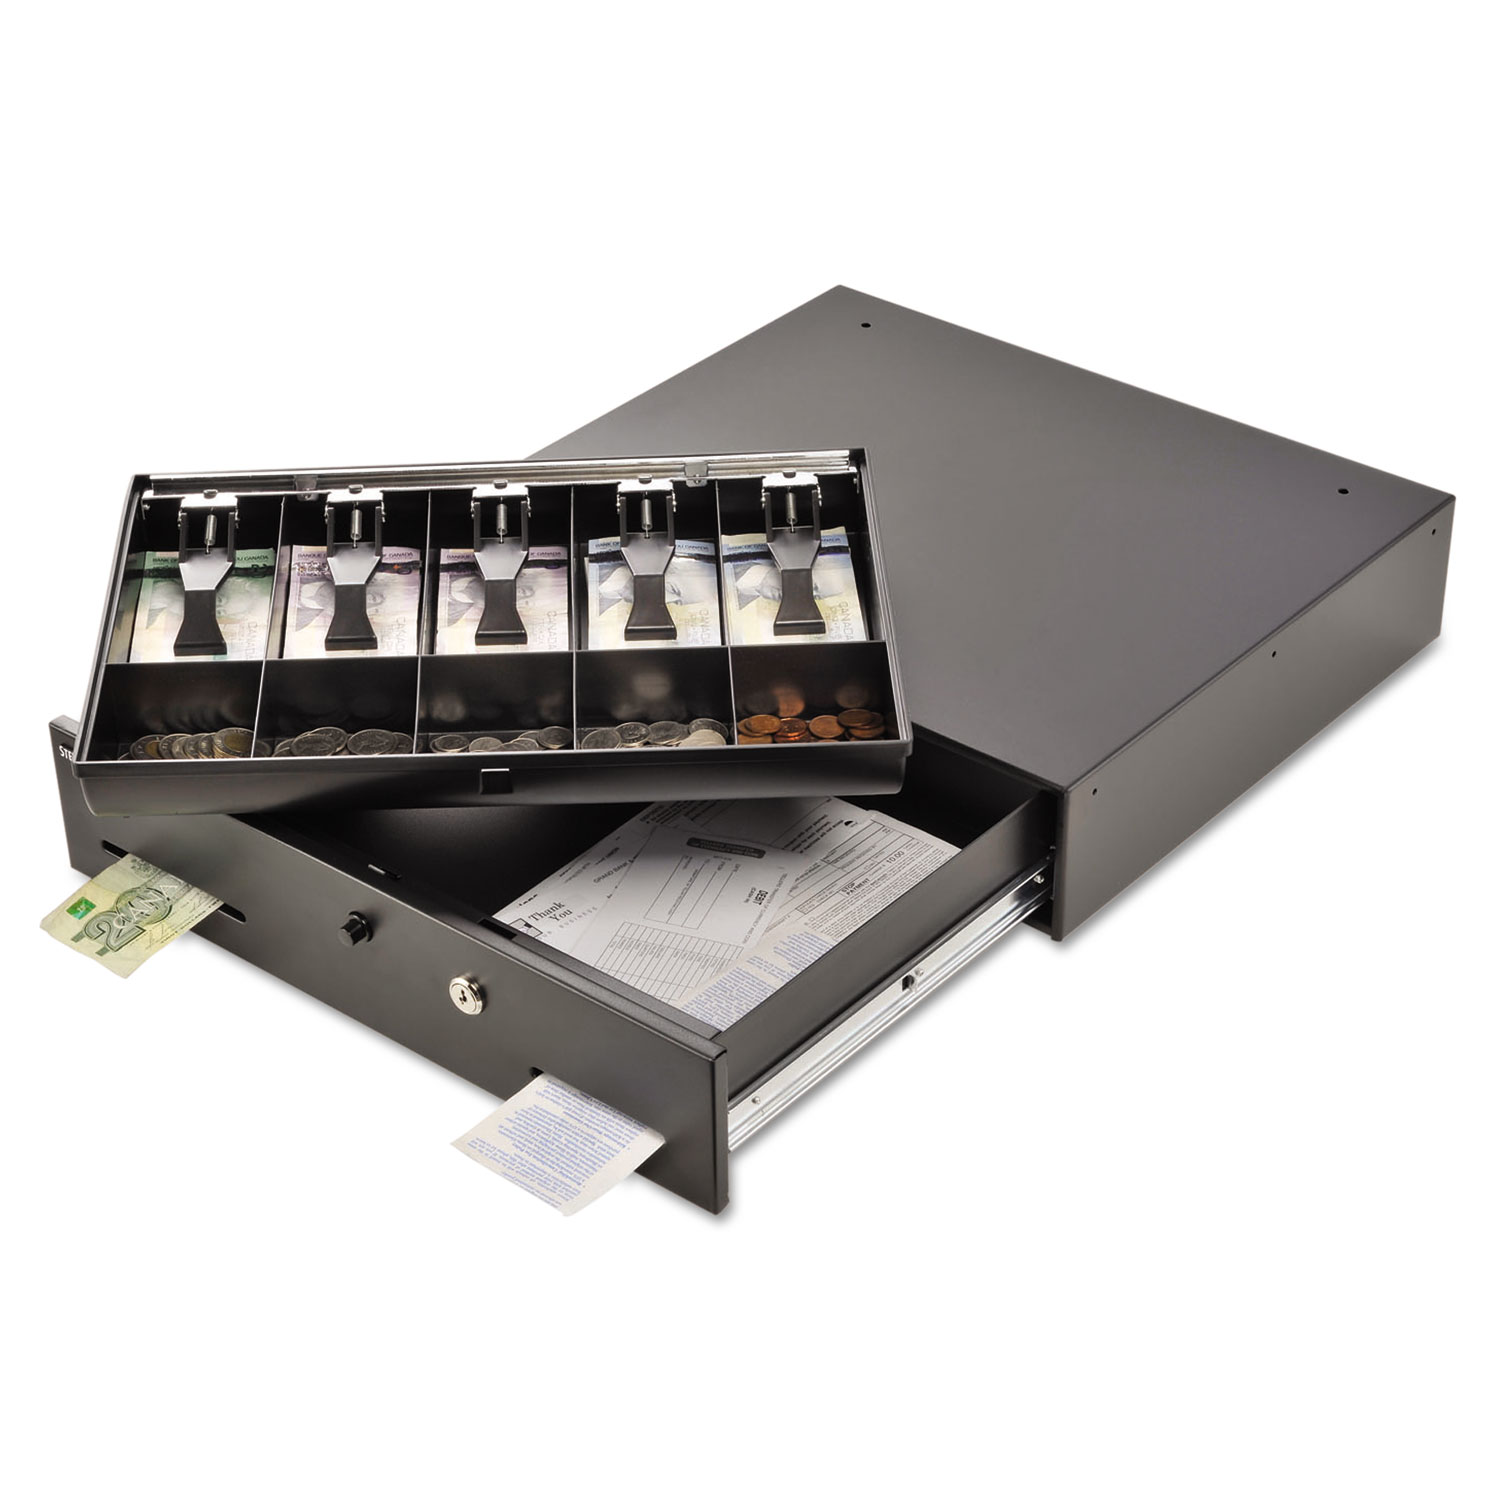 mpop lw max lwo other fbx lws cash electronics drawer cgtrader printer obj and model receipt models